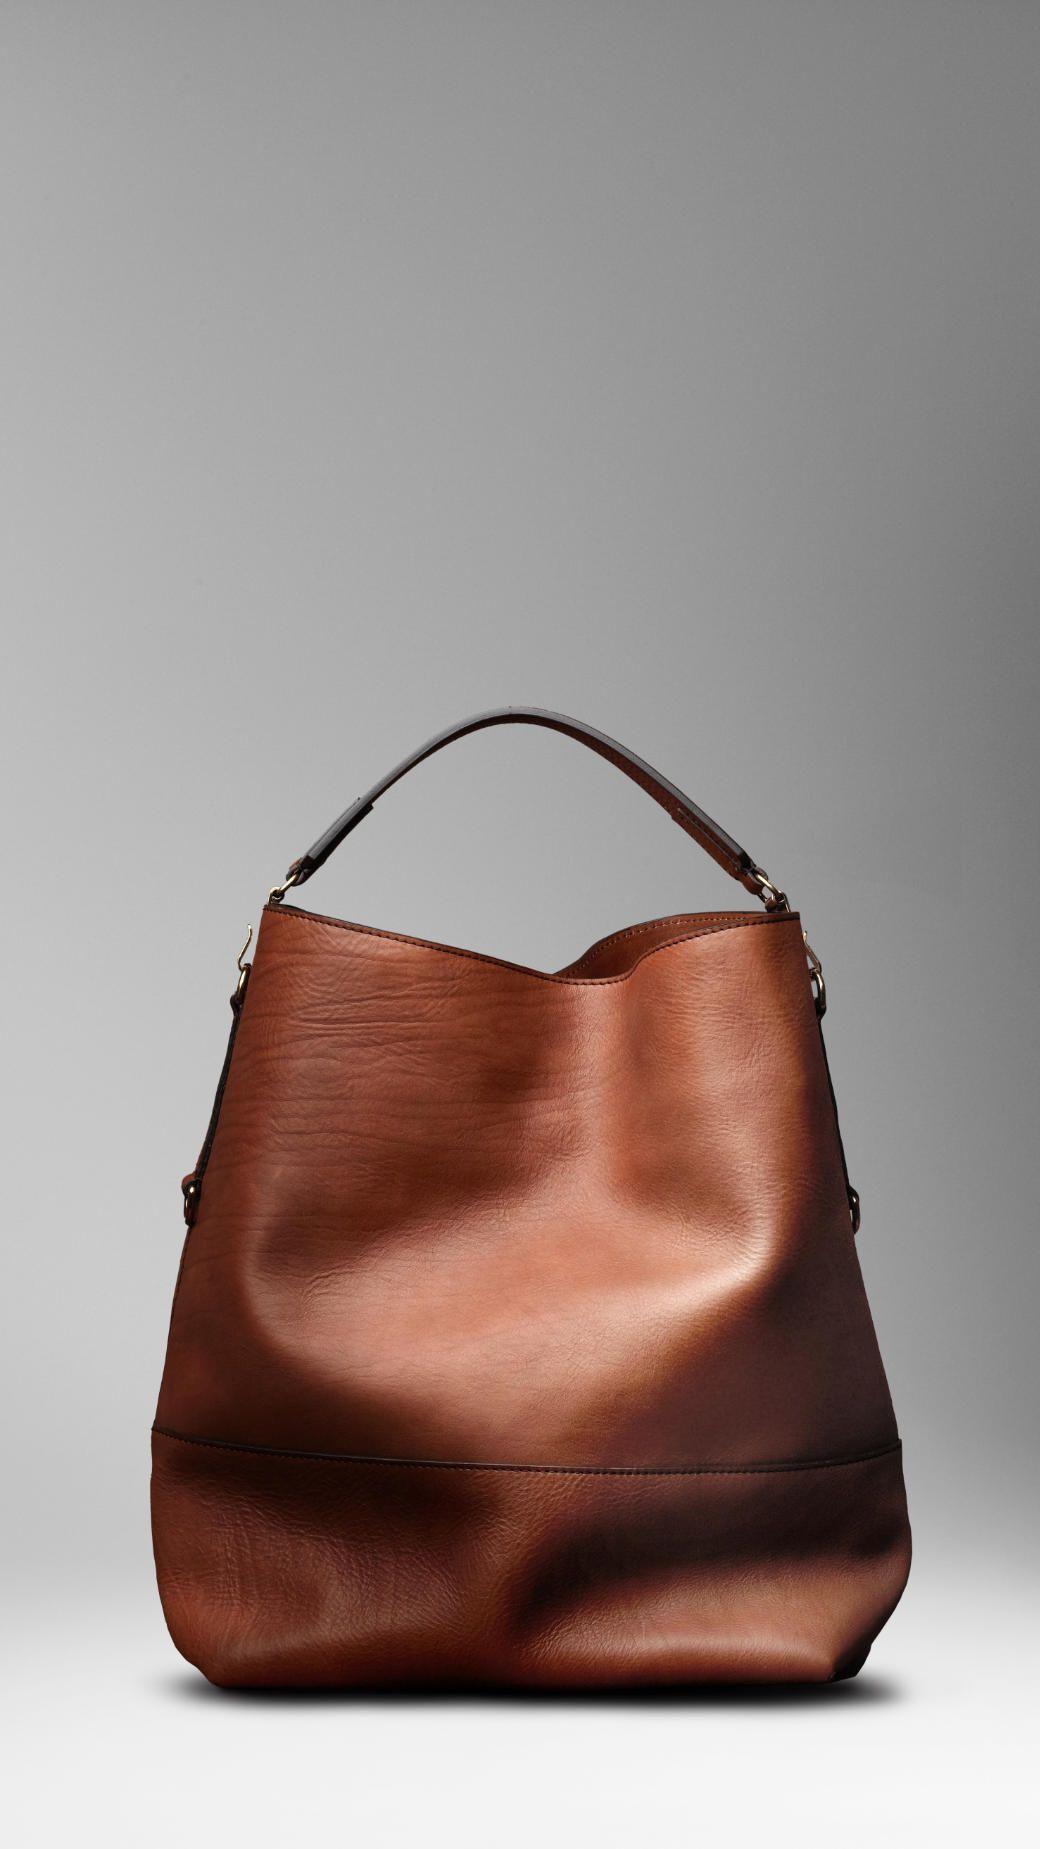 Burberry Large Washed Leather Duffle Bag In Brown For Men Cocoa Lyst Purseburberry Handbagsburberry Outletbrown